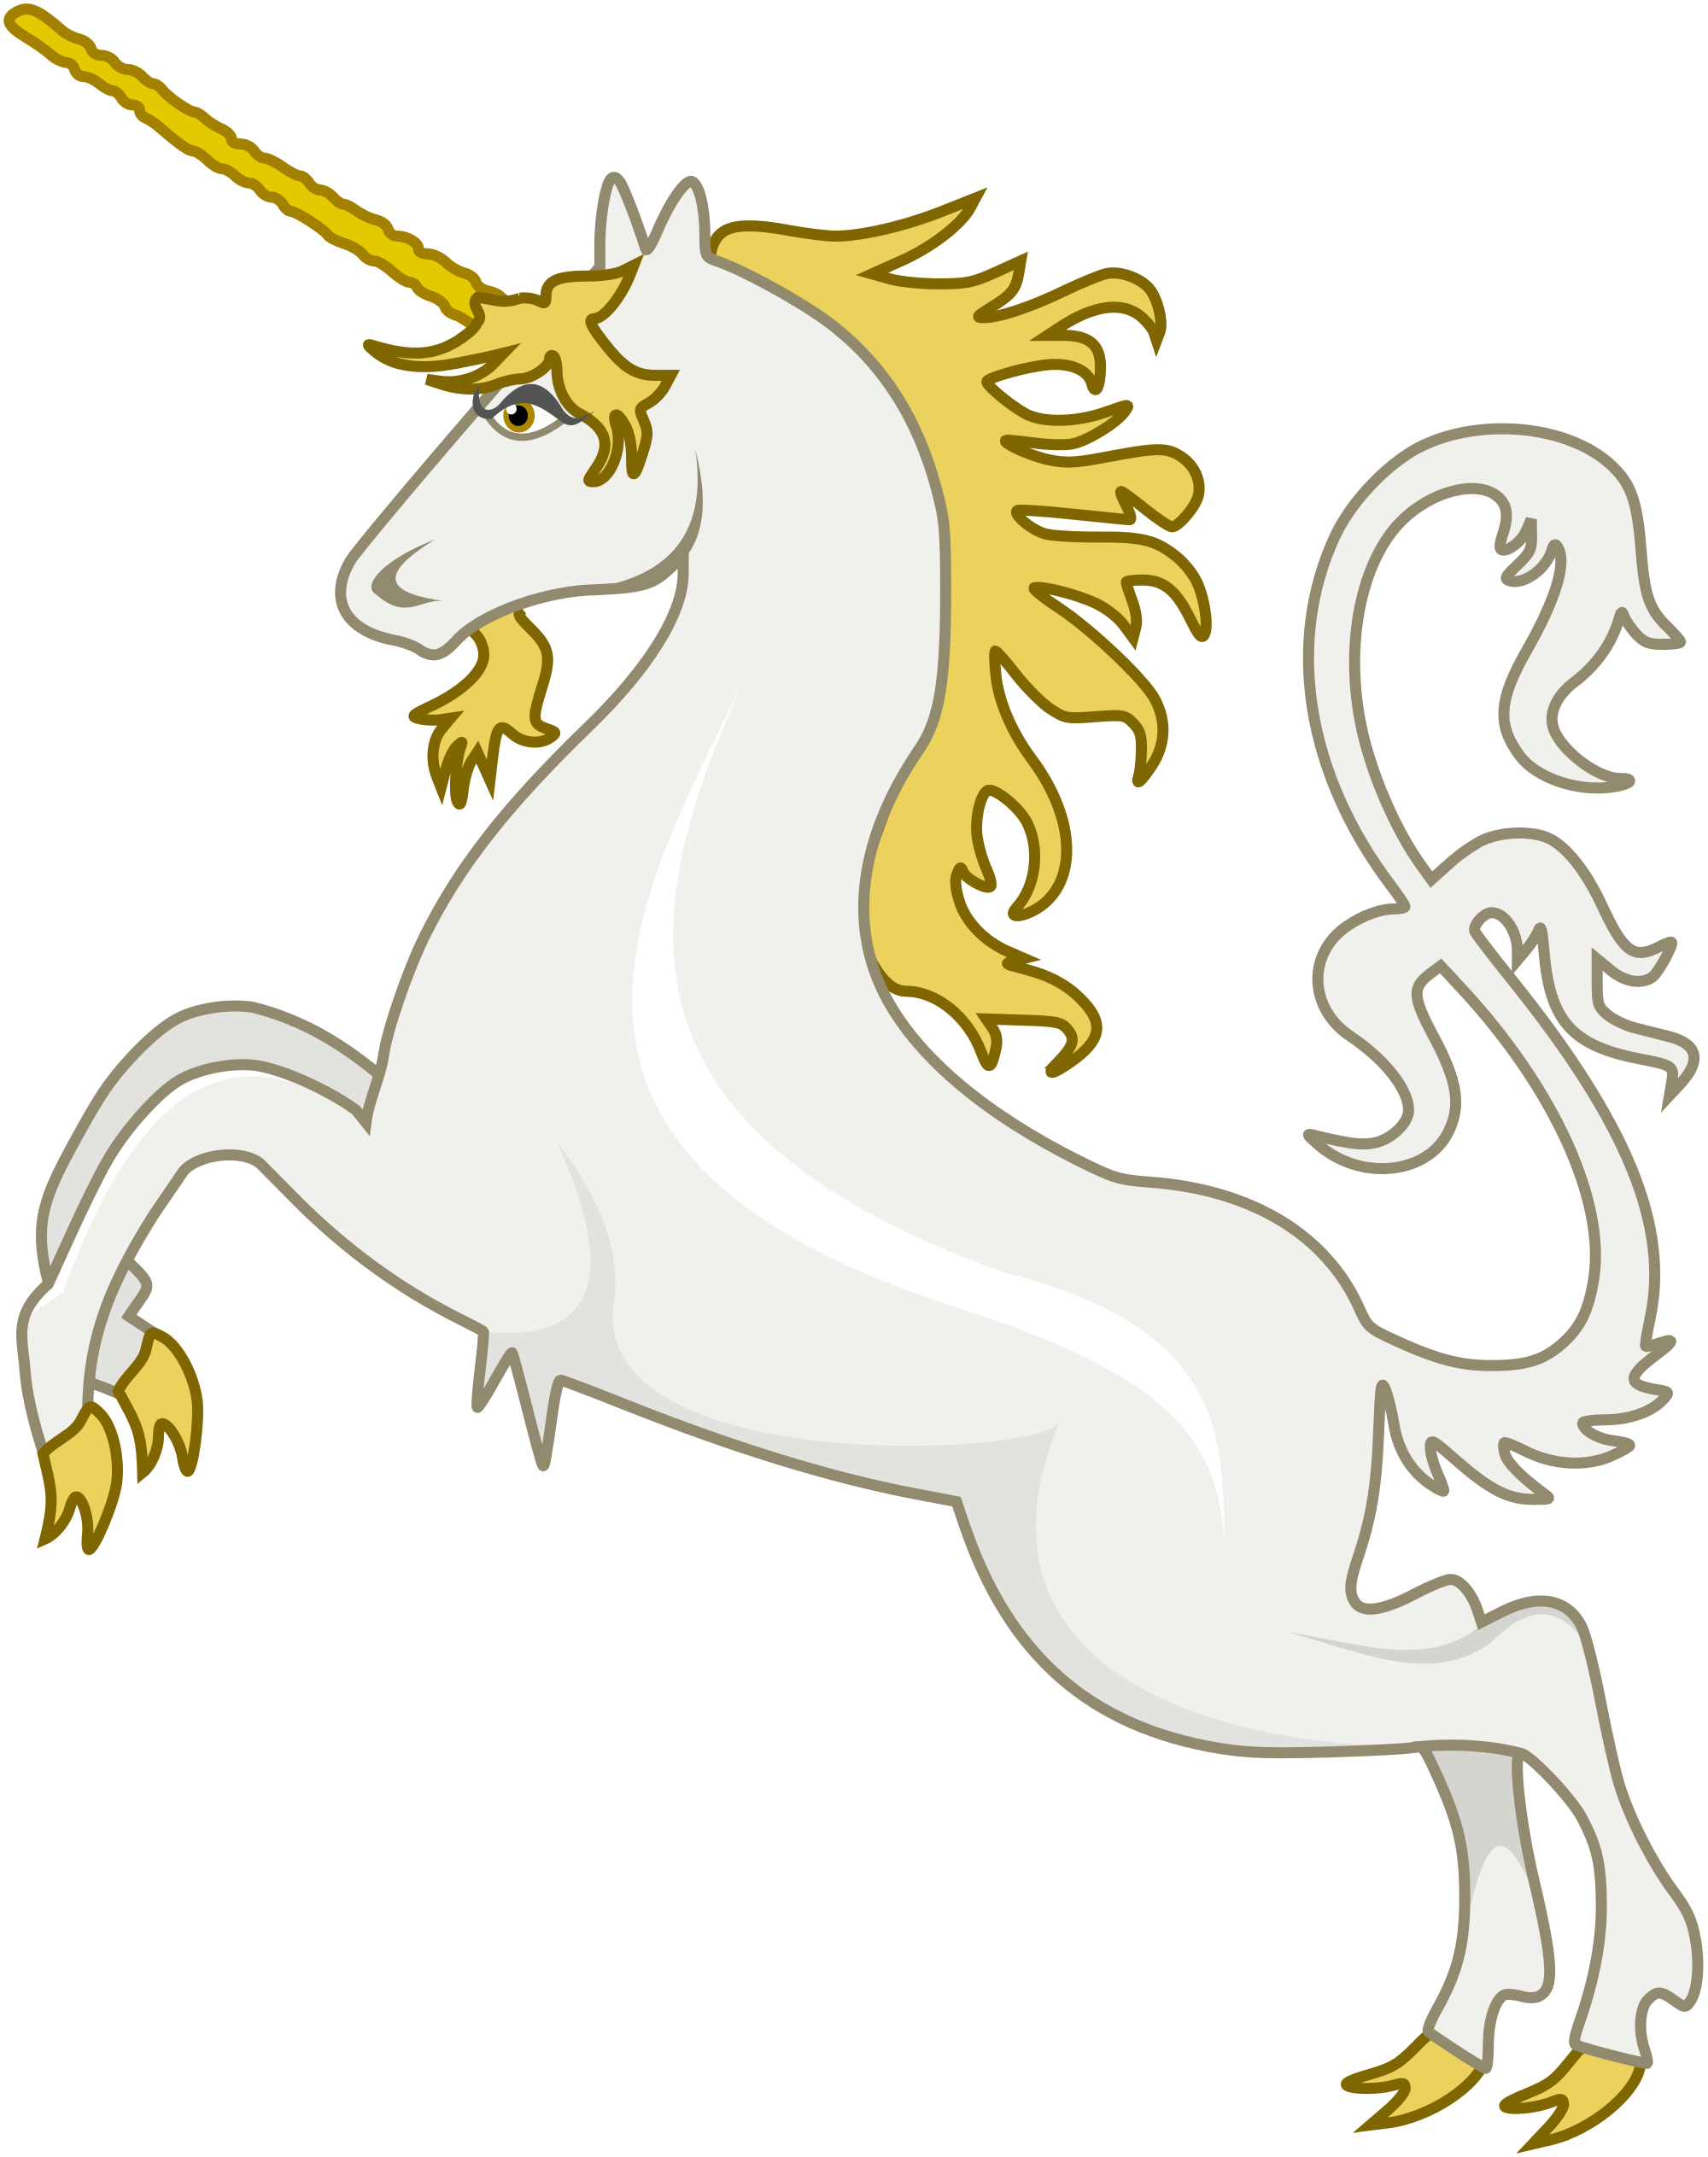 Svg unicorn vector. File heraldic wikimedia commons